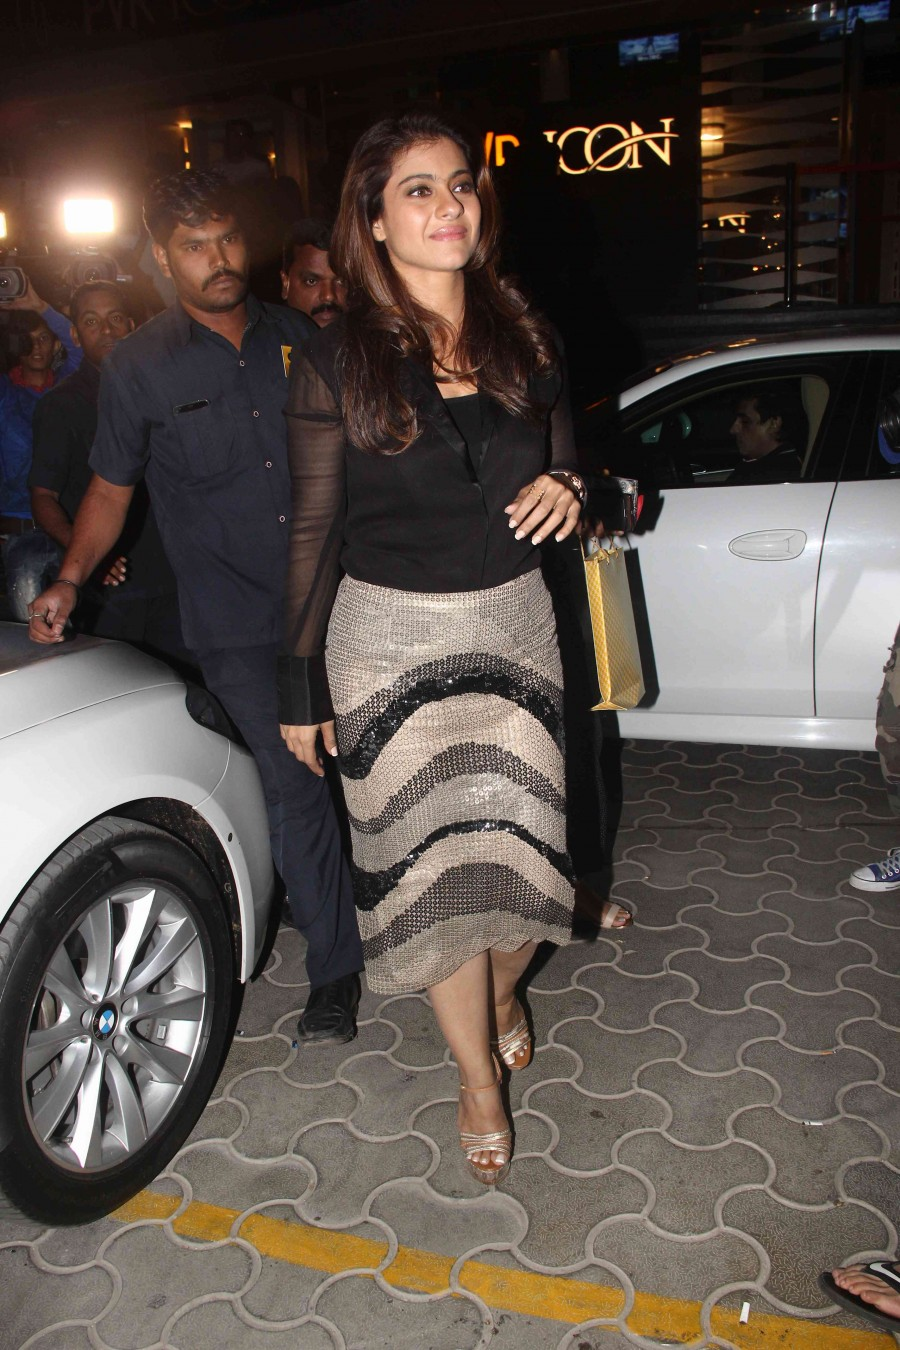 Dilwale Special Screening,Shahrukh Khan,Kajol,Kriti Sanon,Dilwale Special Screening pics,Dilwale Special Screening images,Dilwale Special Screening photos,Dilwale Special Screening stills,Dilwale Special Screening pictures